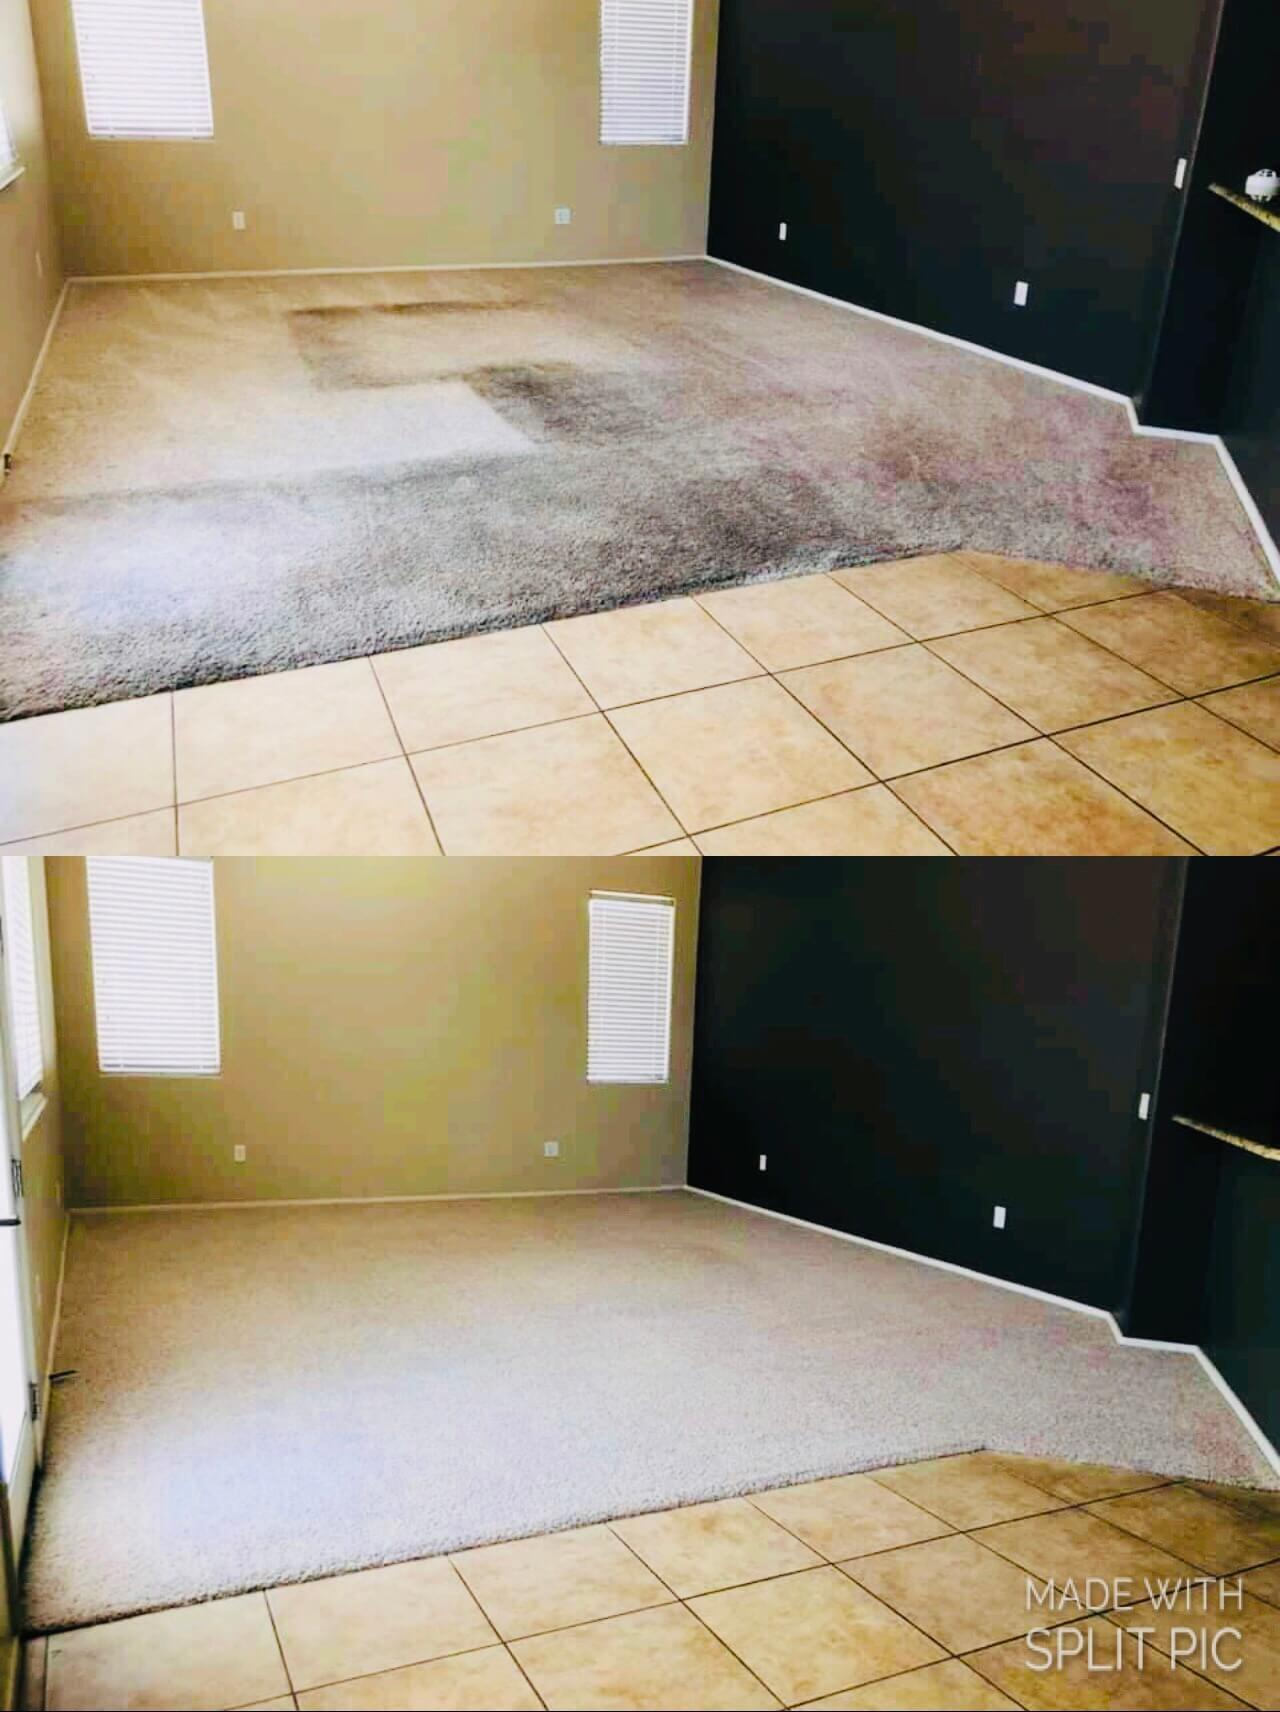 Novasteam is a Pasco professional carpet cleaning services company